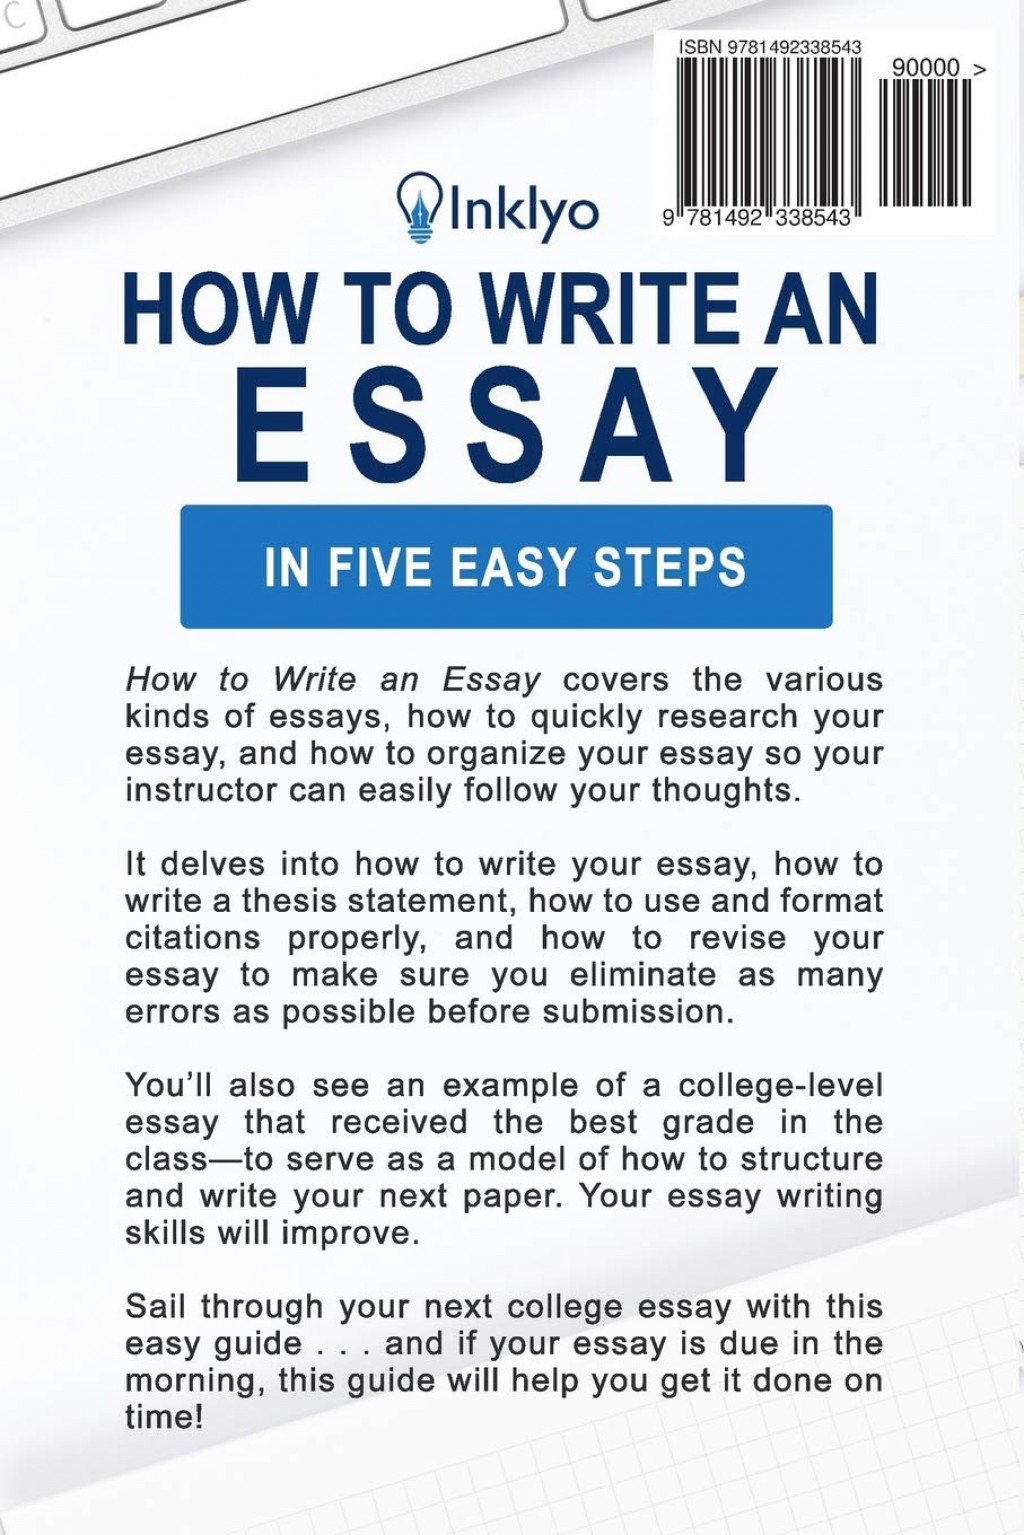 003 Essay Example 71v7ckw5pll How Do You Write Unbelievable An A Good Outline To Introduction Paragraph Argumentative In Third Person Large